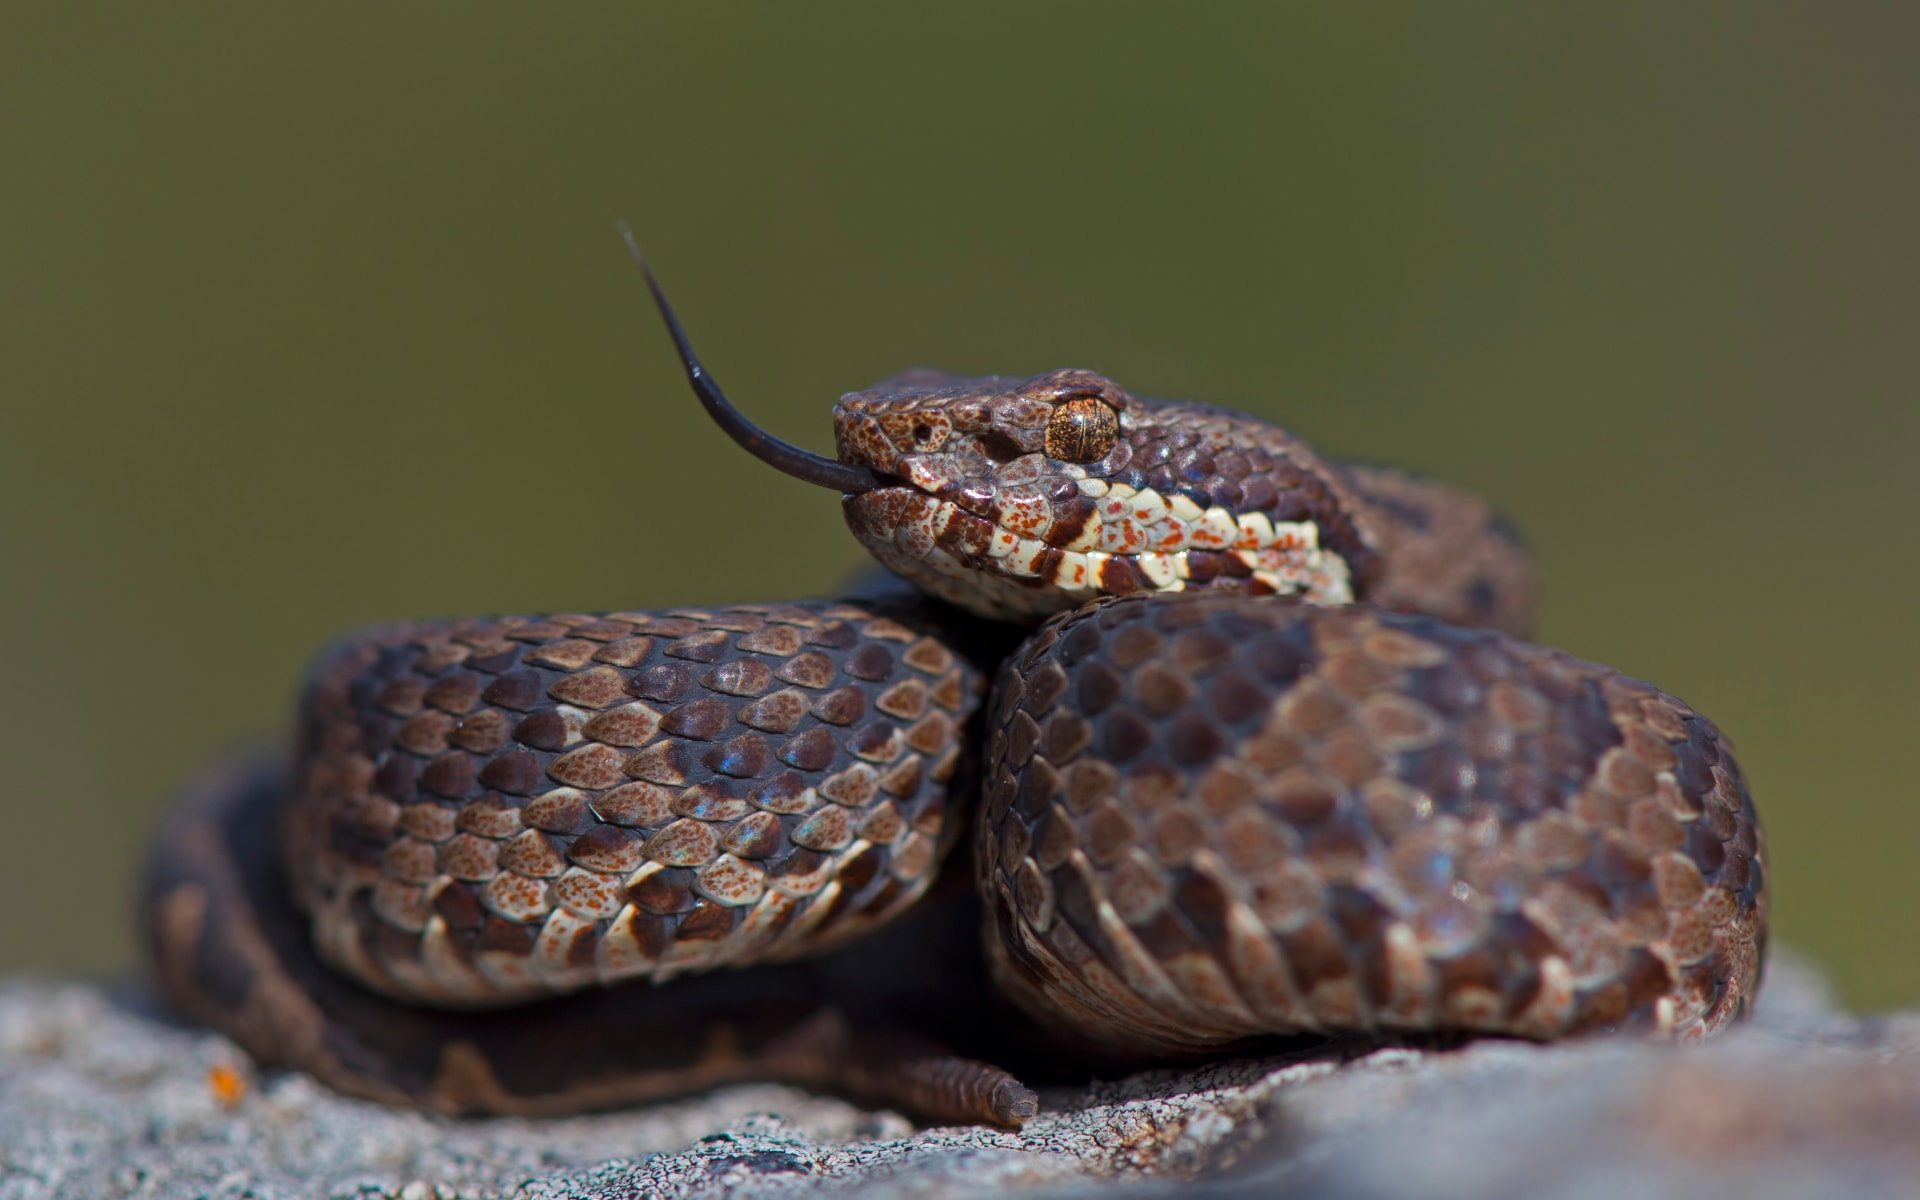 Horseshoe pit vipers are generally coloured in shades of brown and grey, and inhabit the upper Nilgiri Hills of Tamil Nadu. The hill station of Ooty, is prime territory for this snake. Photo: Dhritiman Mukherjee